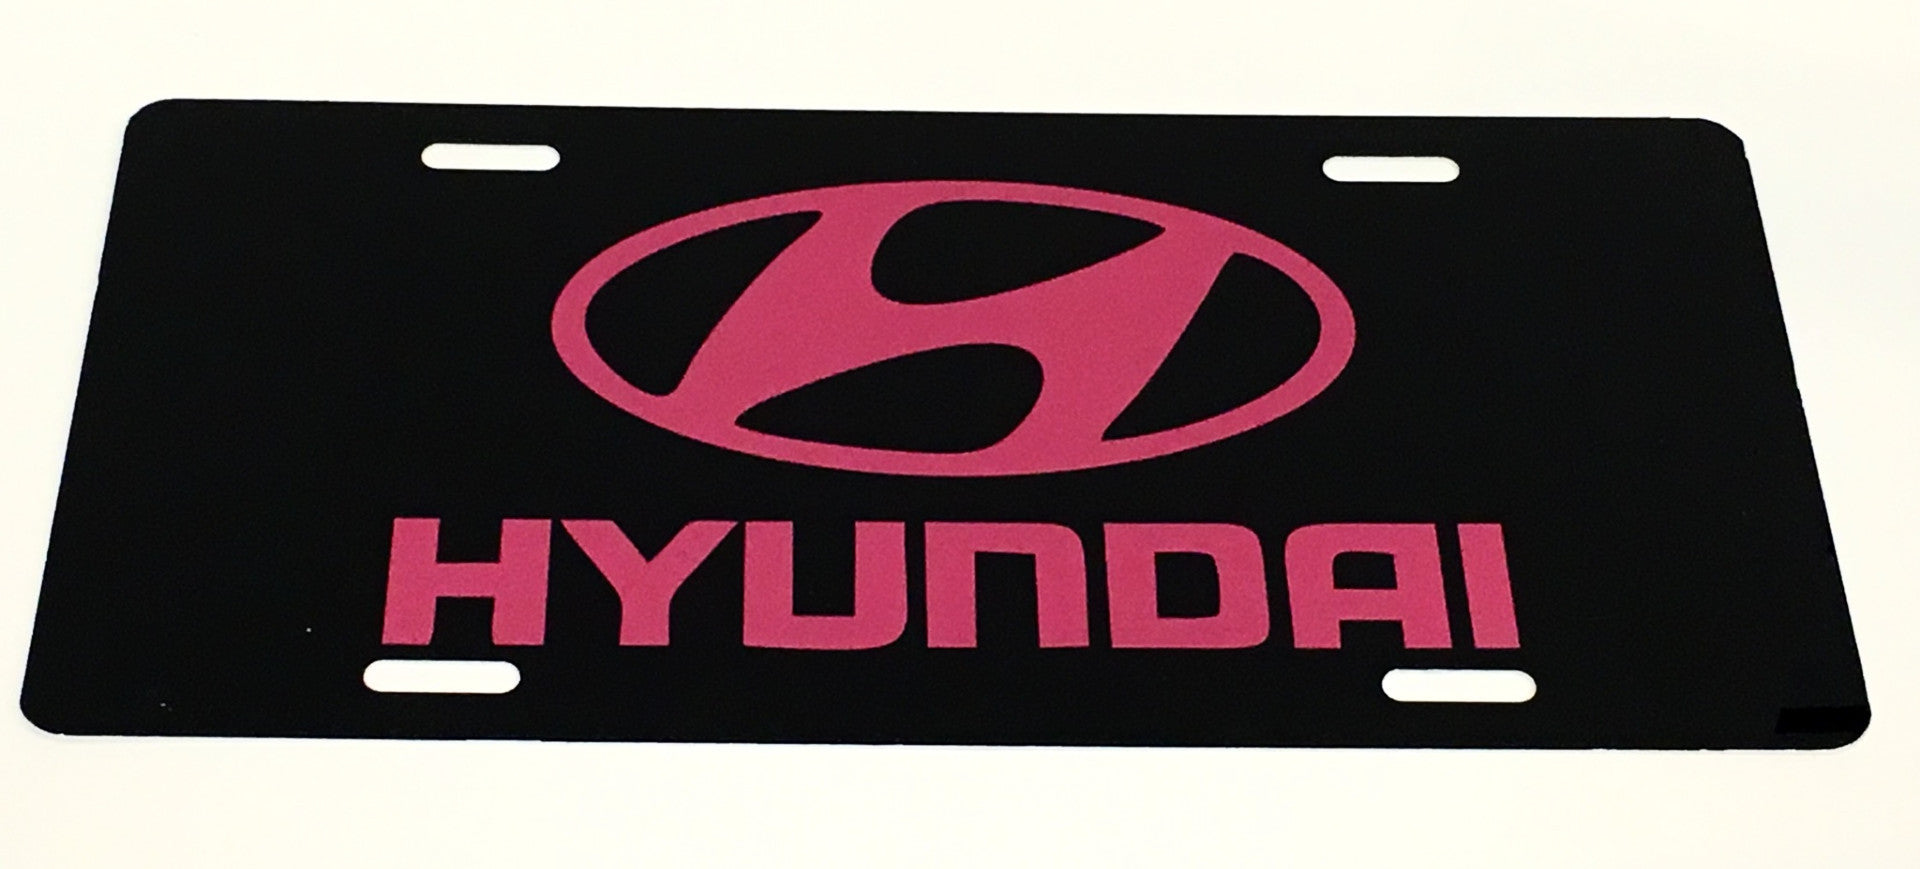 Hyundai Logo Black/Pink License Plate